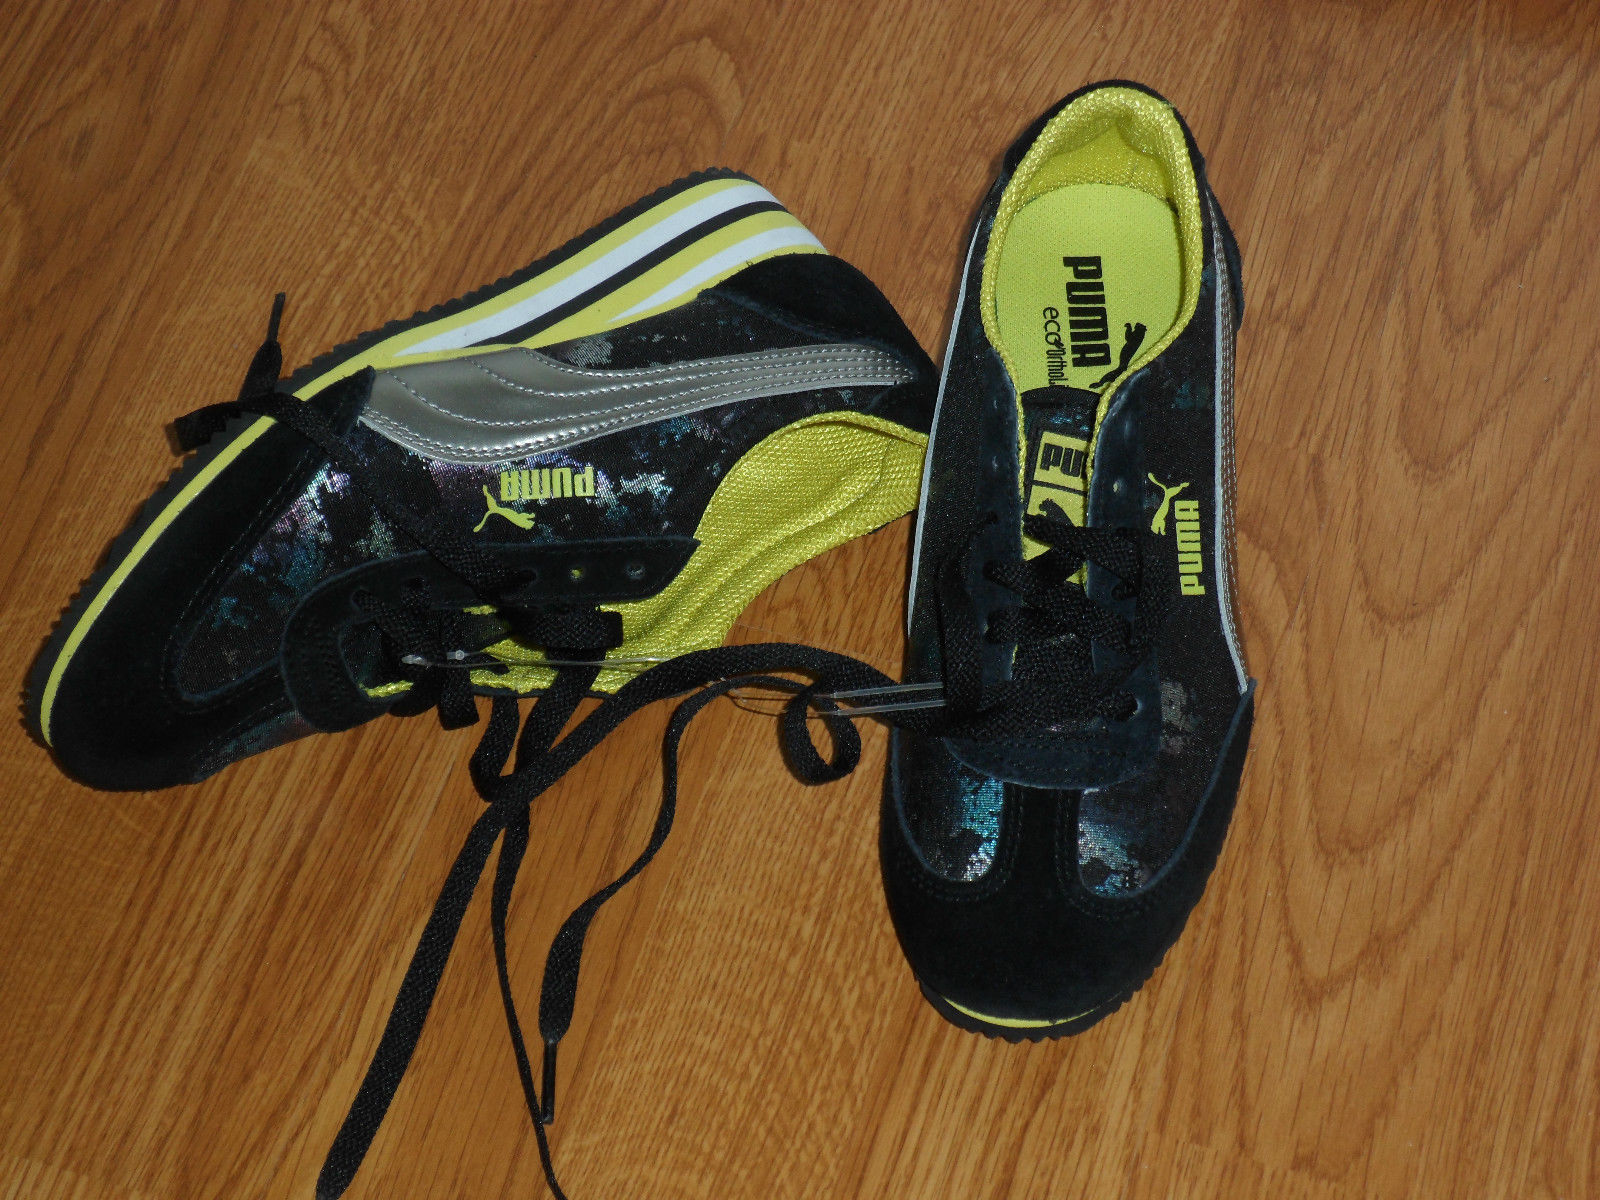 Primary image for PUMA ECO ORTHOLITE SNEAKERS SIZE 10 LADIES BLACK / YELLOW PRINT NWT